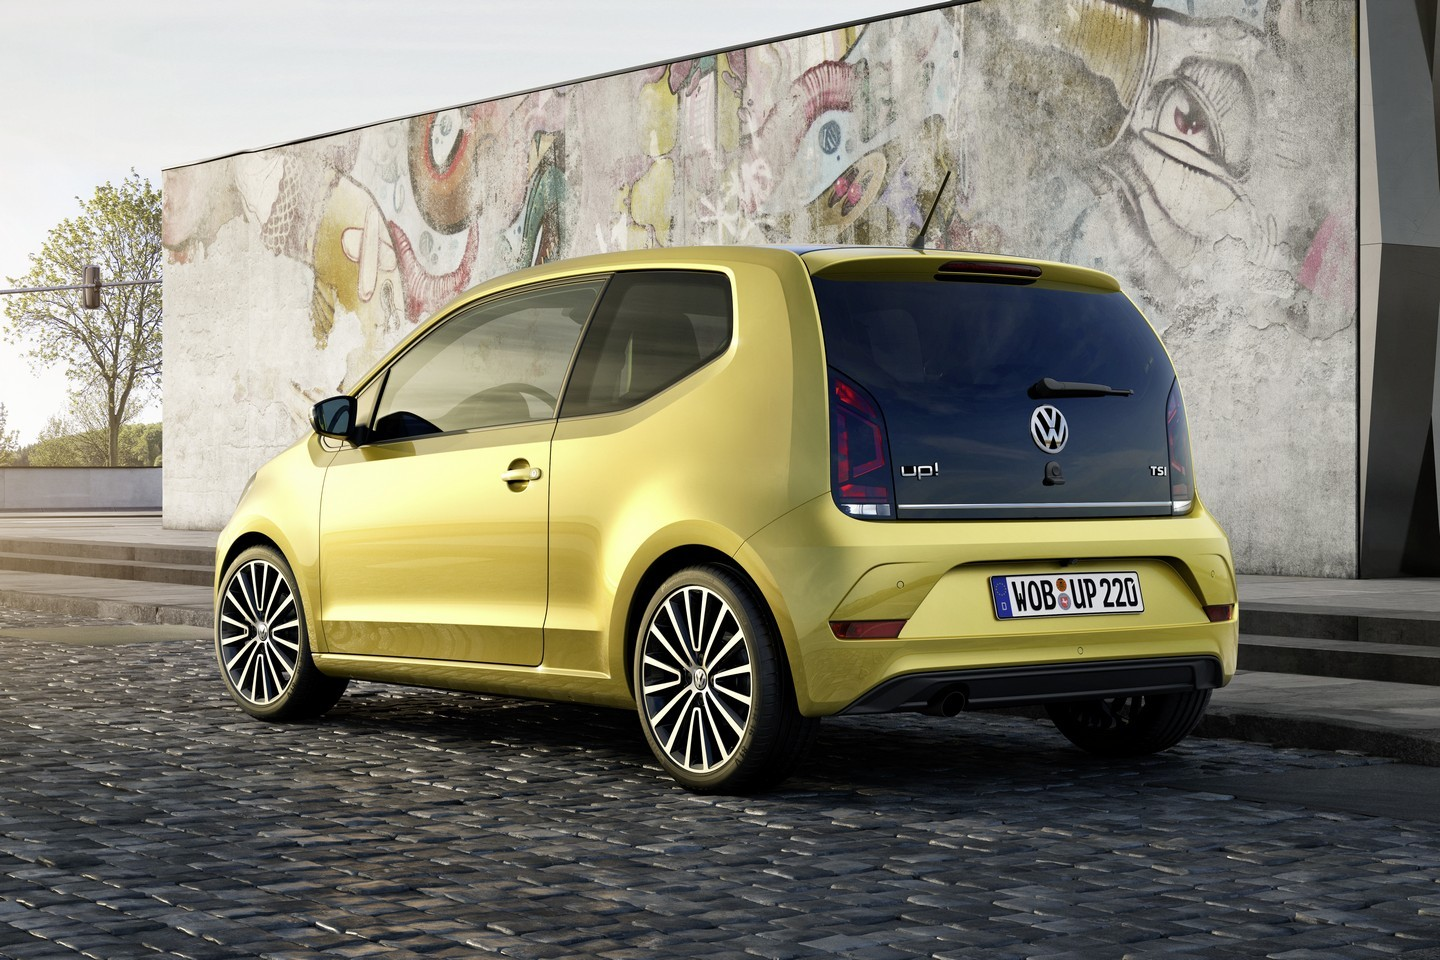 2016 Volkswagen Up! Facelift Revealed with 1.0 TSI Turbo Engine and Manly Grille - autoevolution